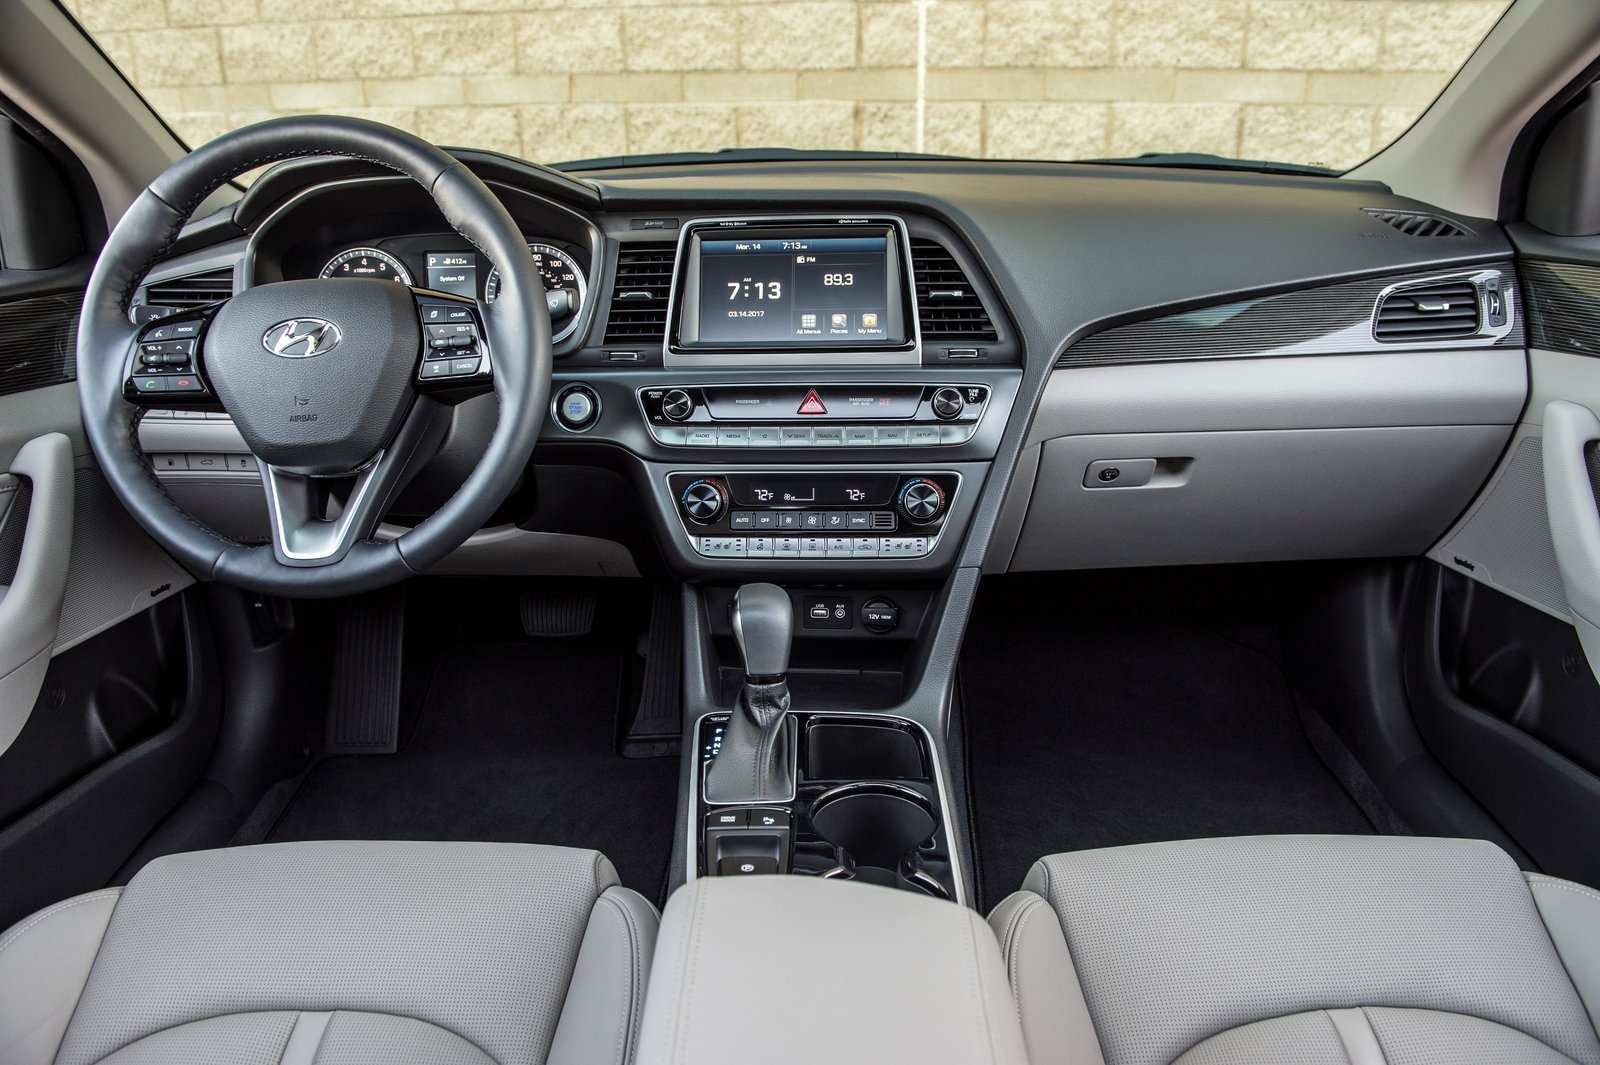 73 Best 2019 Hyundai Sonata Review Research New